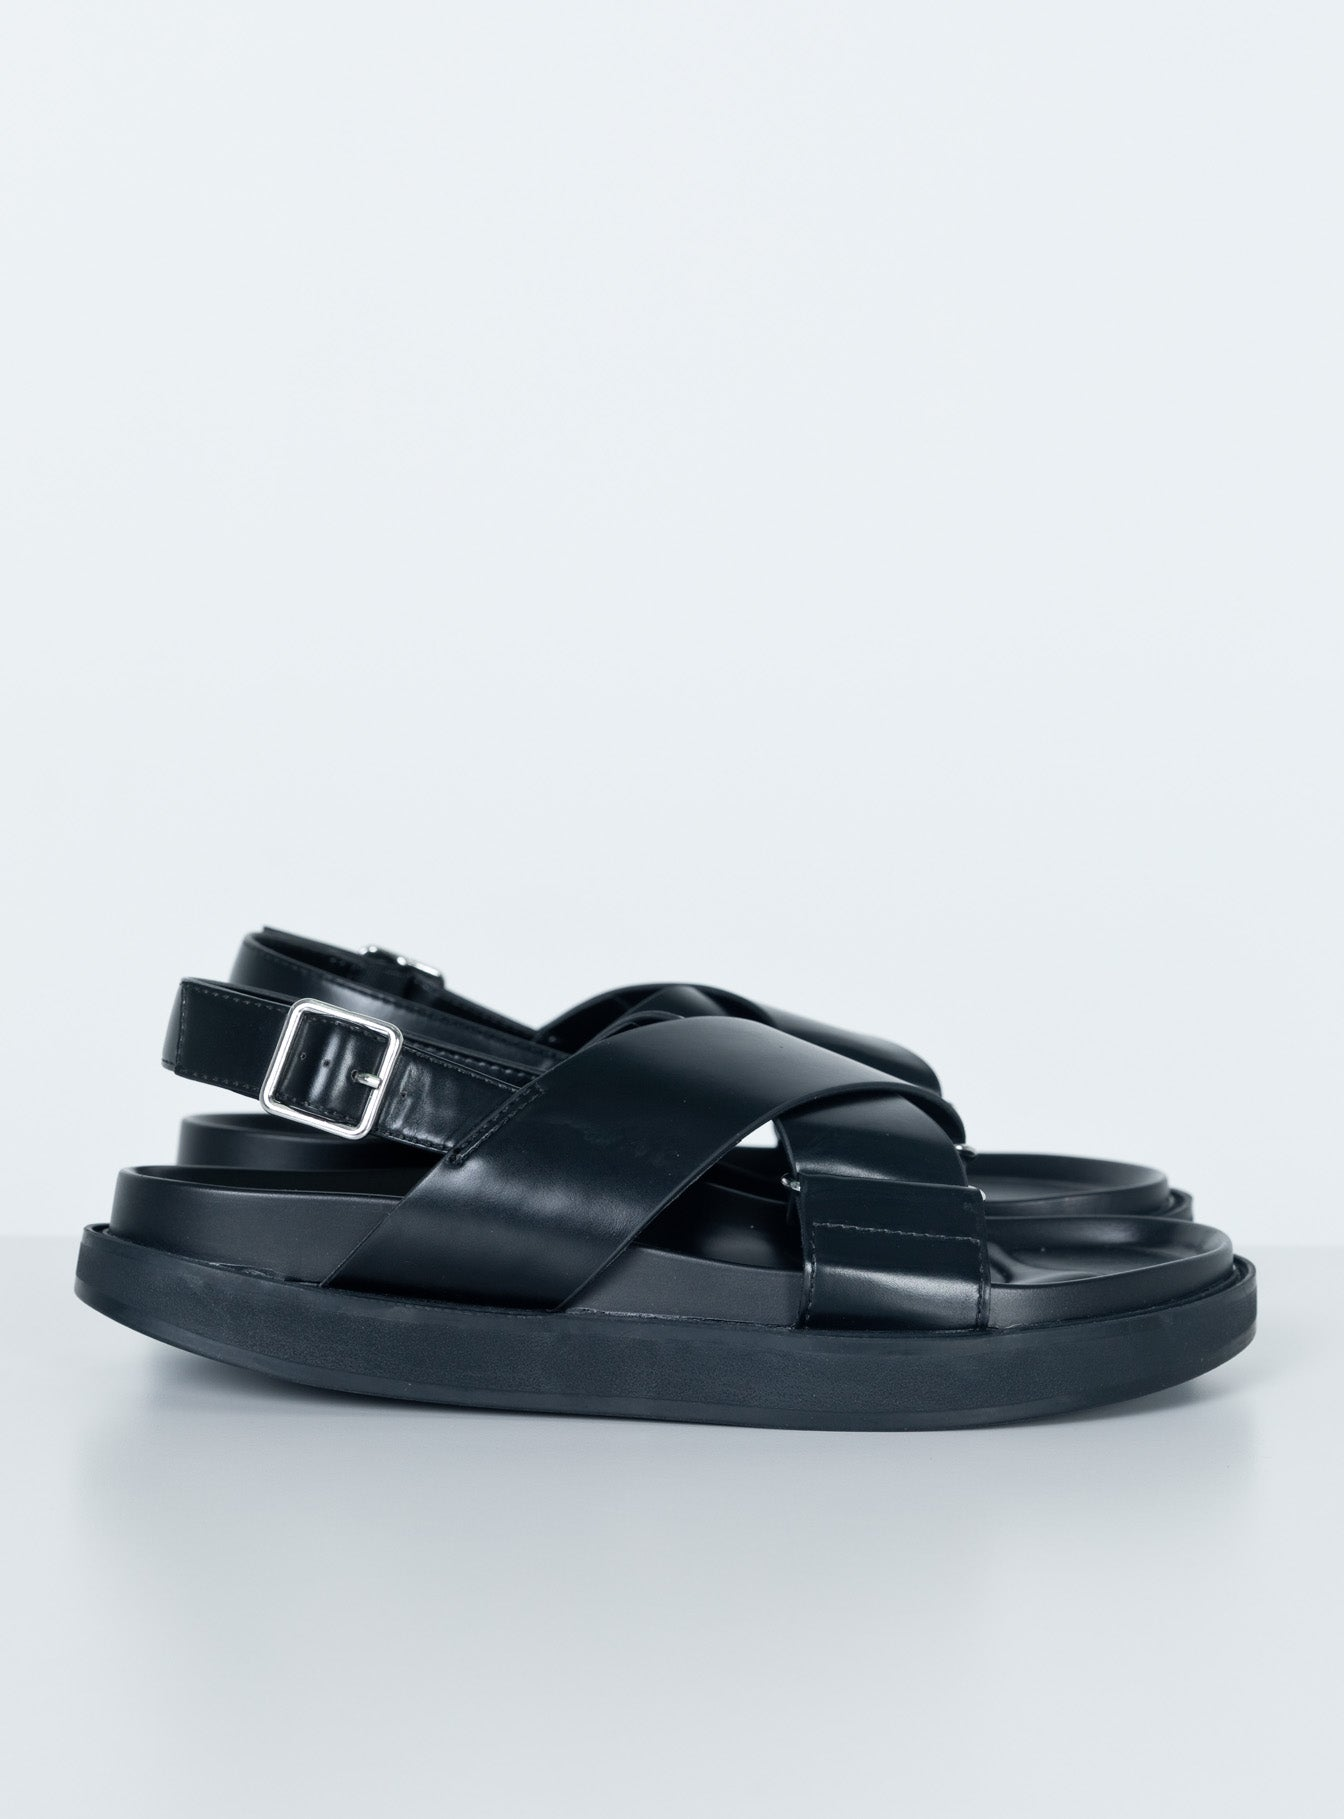 Pink Lemonade Sandals Black